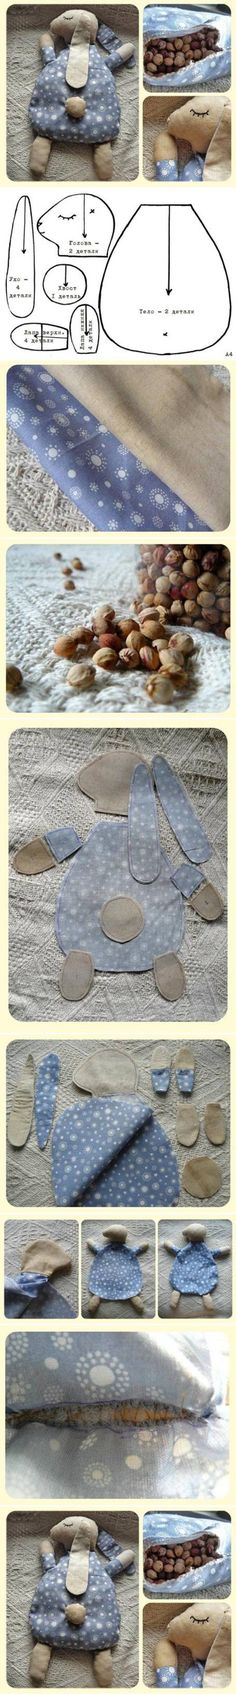 18 ideas for baby diy sewing toy Sewing Toys, Baby Sewing, Sewing Crafts, Sewing Projects, Diy Crafts, Diy Projects, Fabric Toys, Fabric Crafts, Doll Patterns